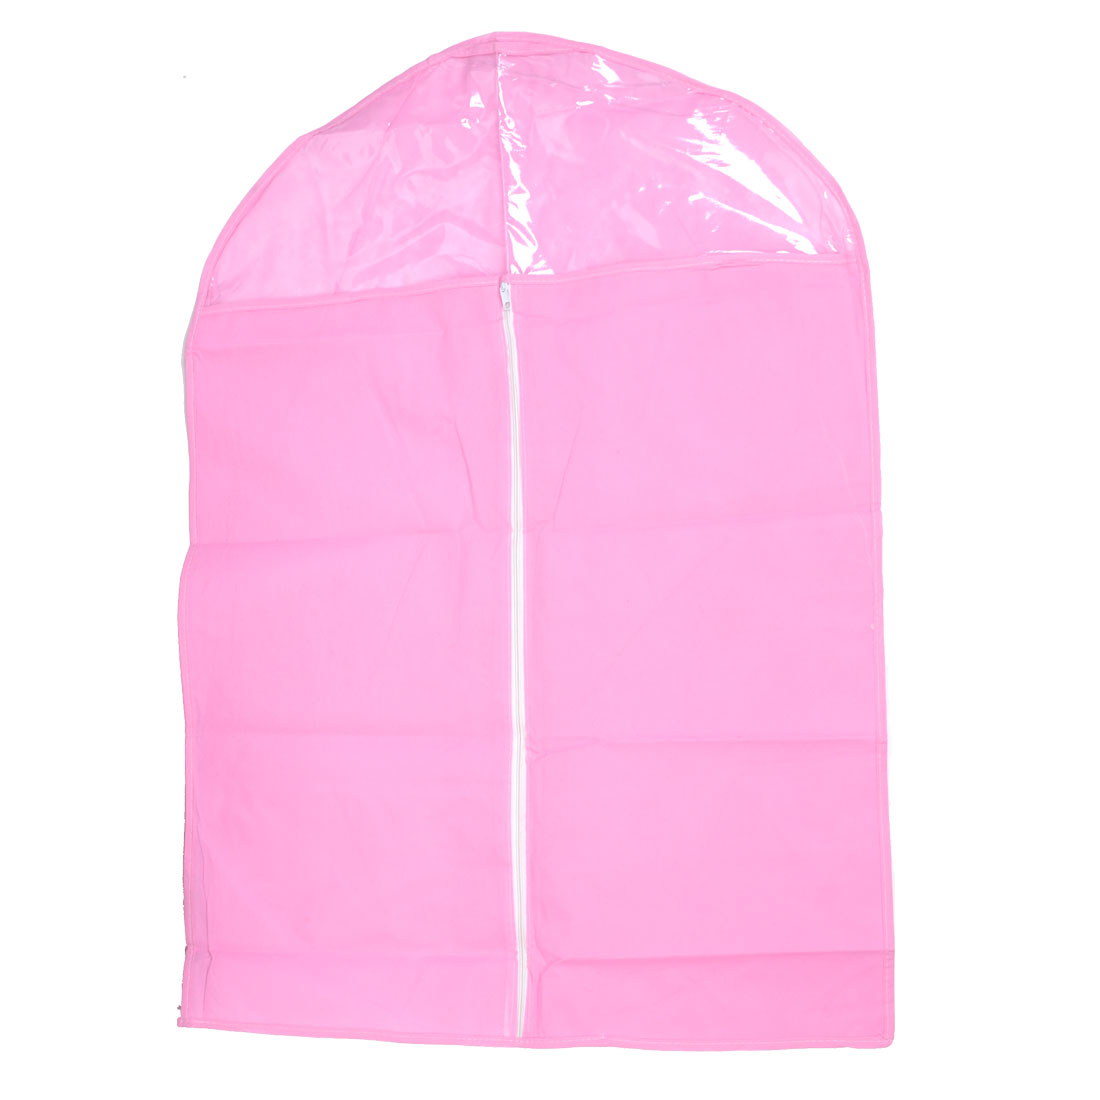 Home Pink Clear Non-woven Breathable Garment Suit Dress Cover Bag 83 x 57cm